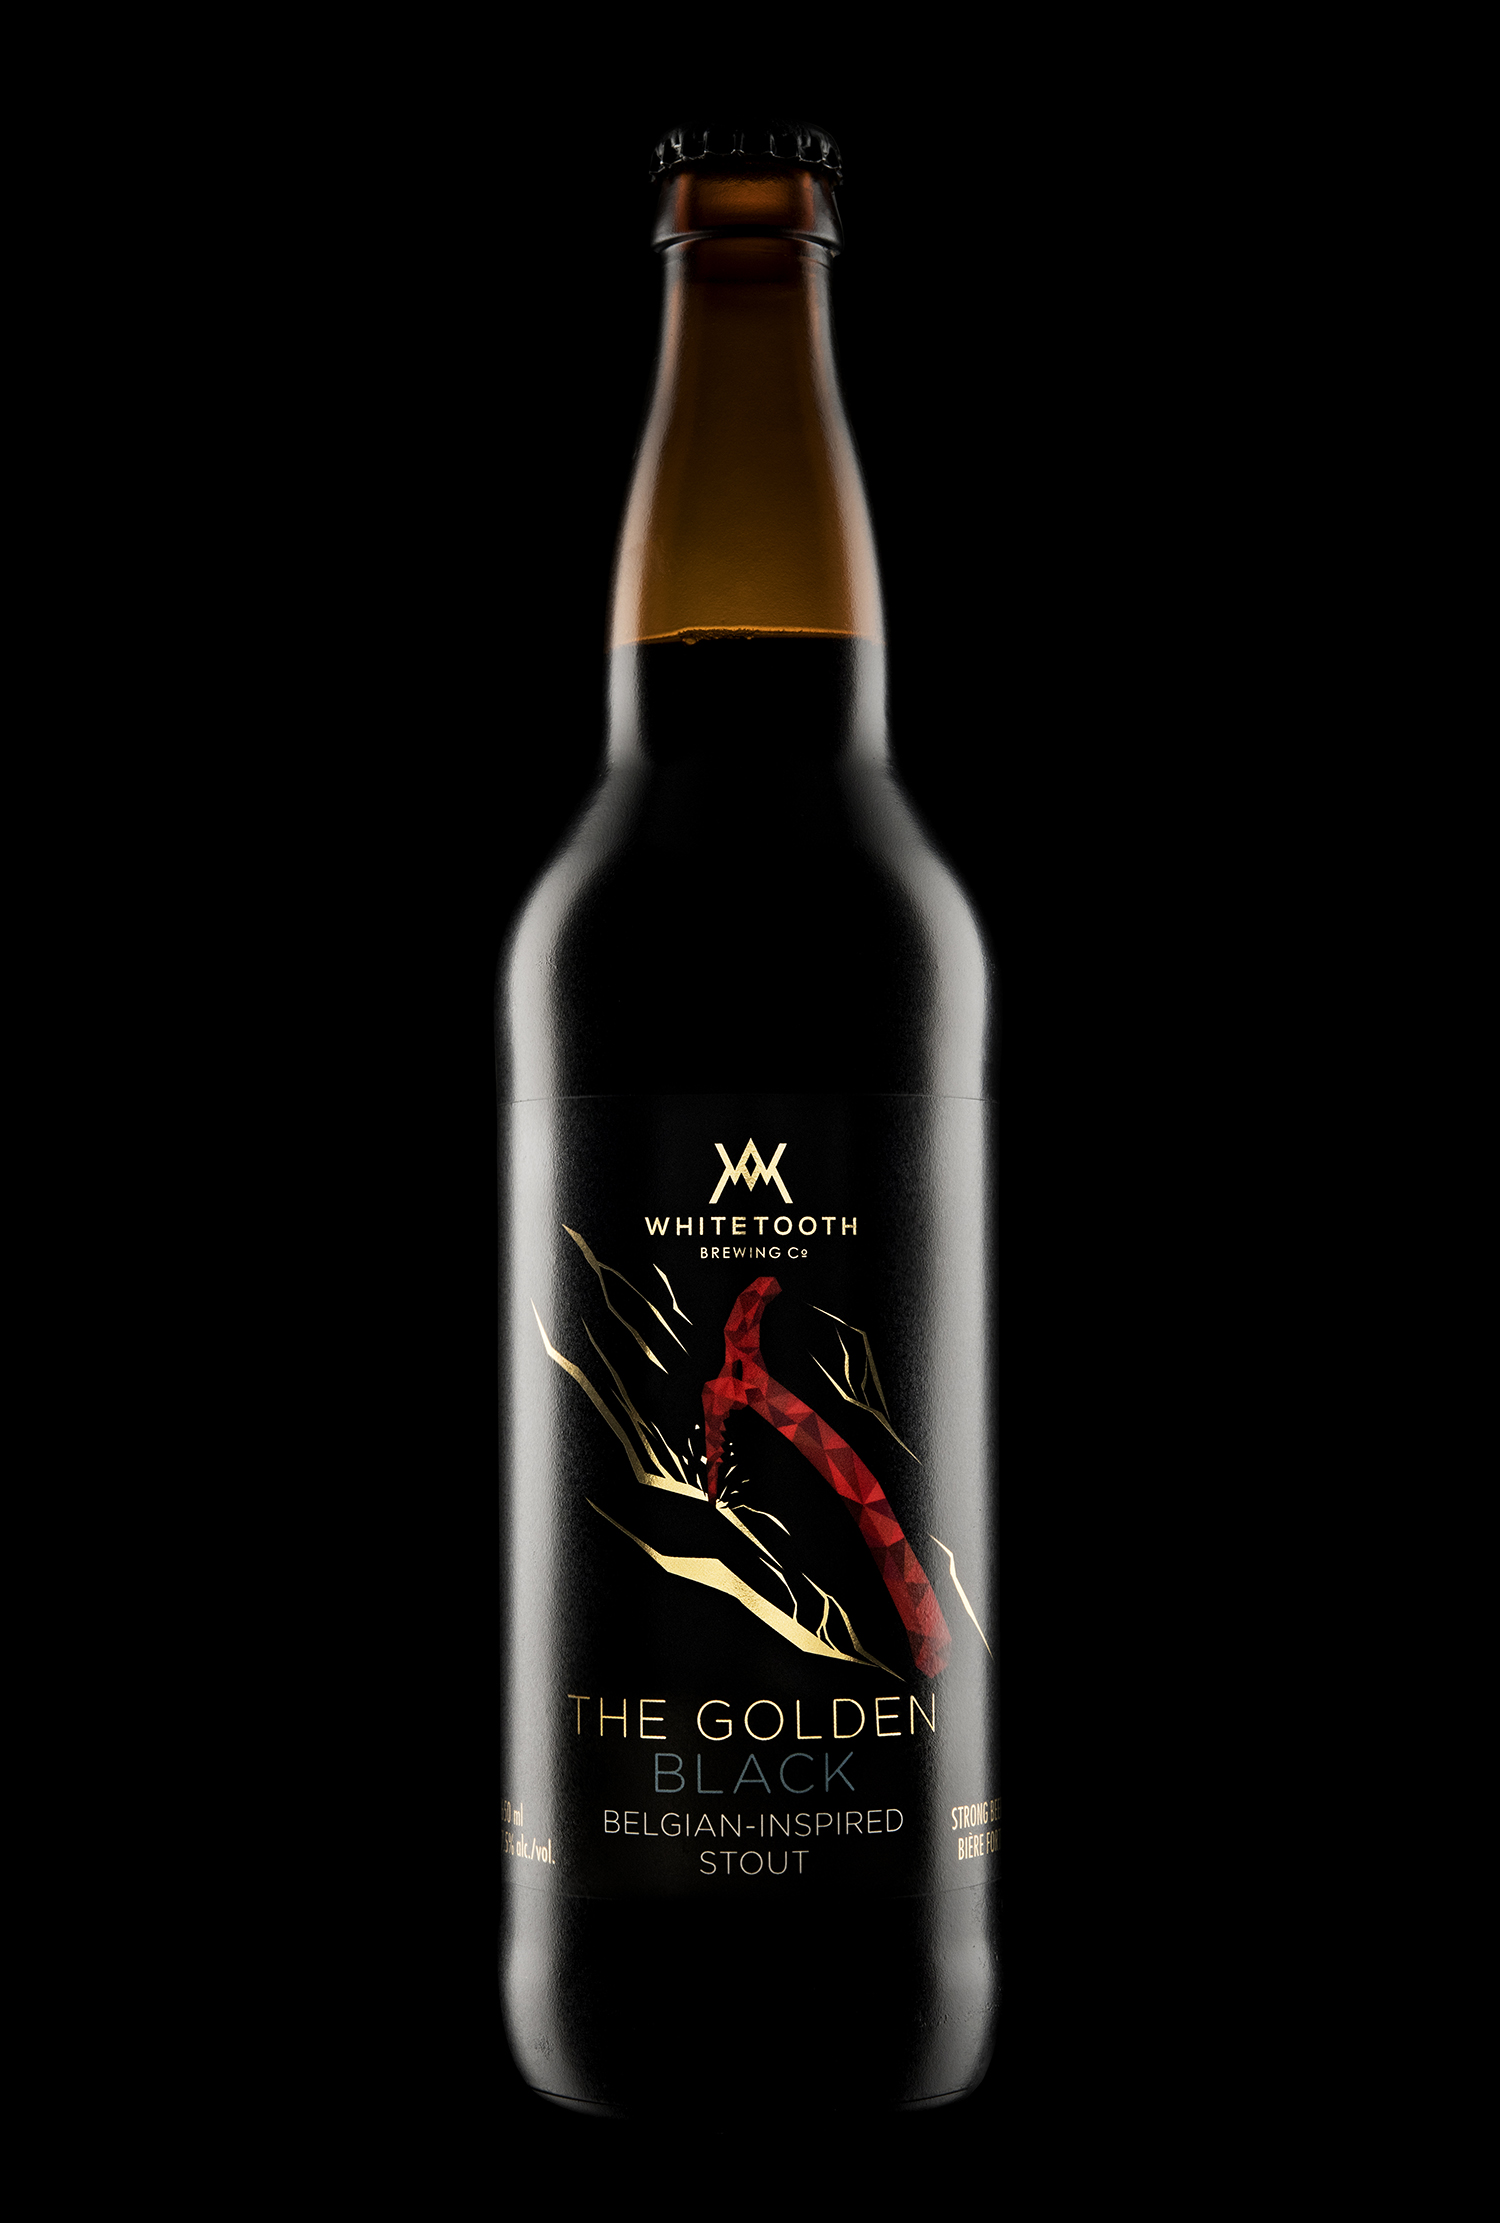 Branding and Packaging Design for Whitetooth Brewing's Golden Black Belgian-Inspired Stout